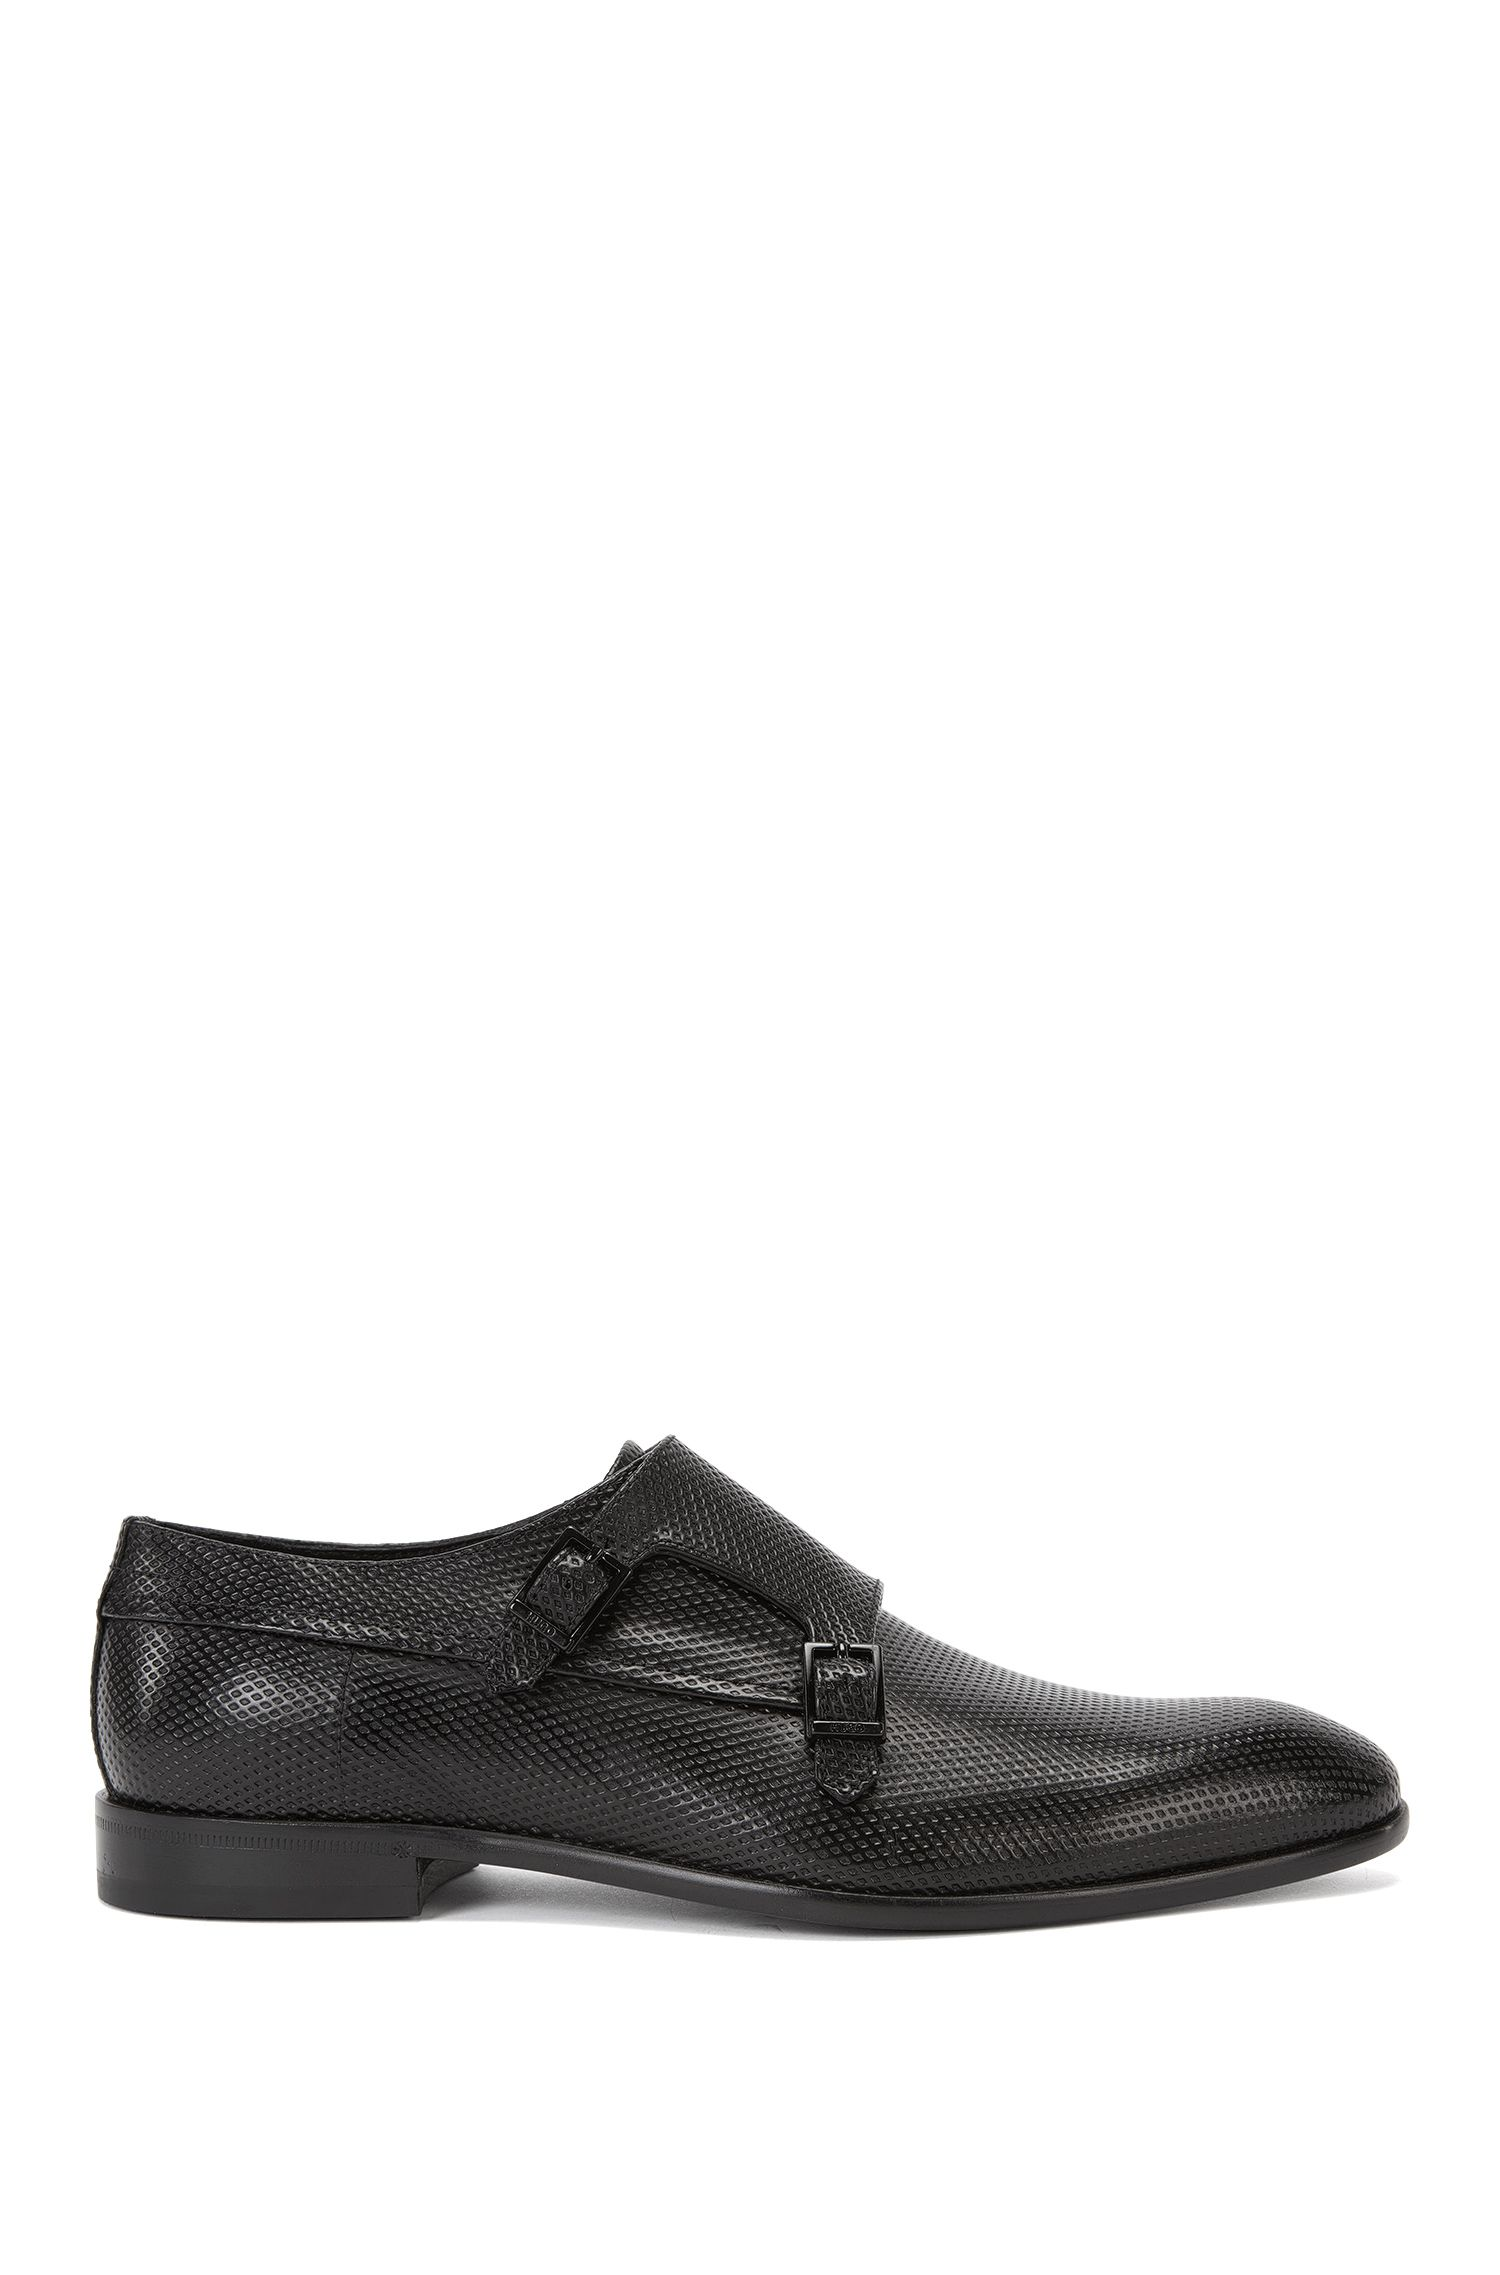 Double monk shoes in embossed leather: 'Dressapp_Monk_pr'